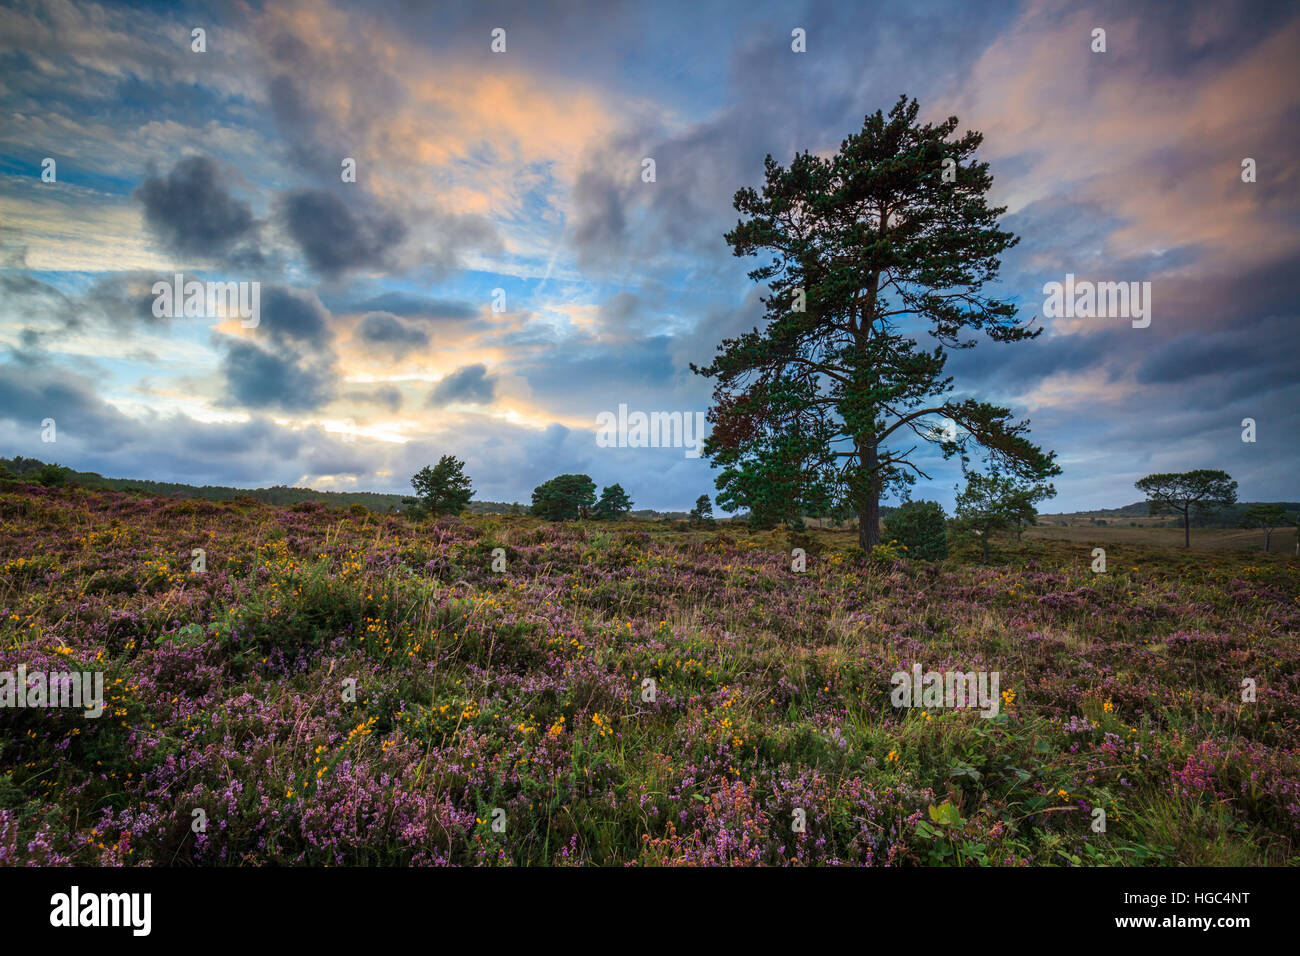 A tree on Woodbury Common Near Exmouth in South East Devon. - Stock Image